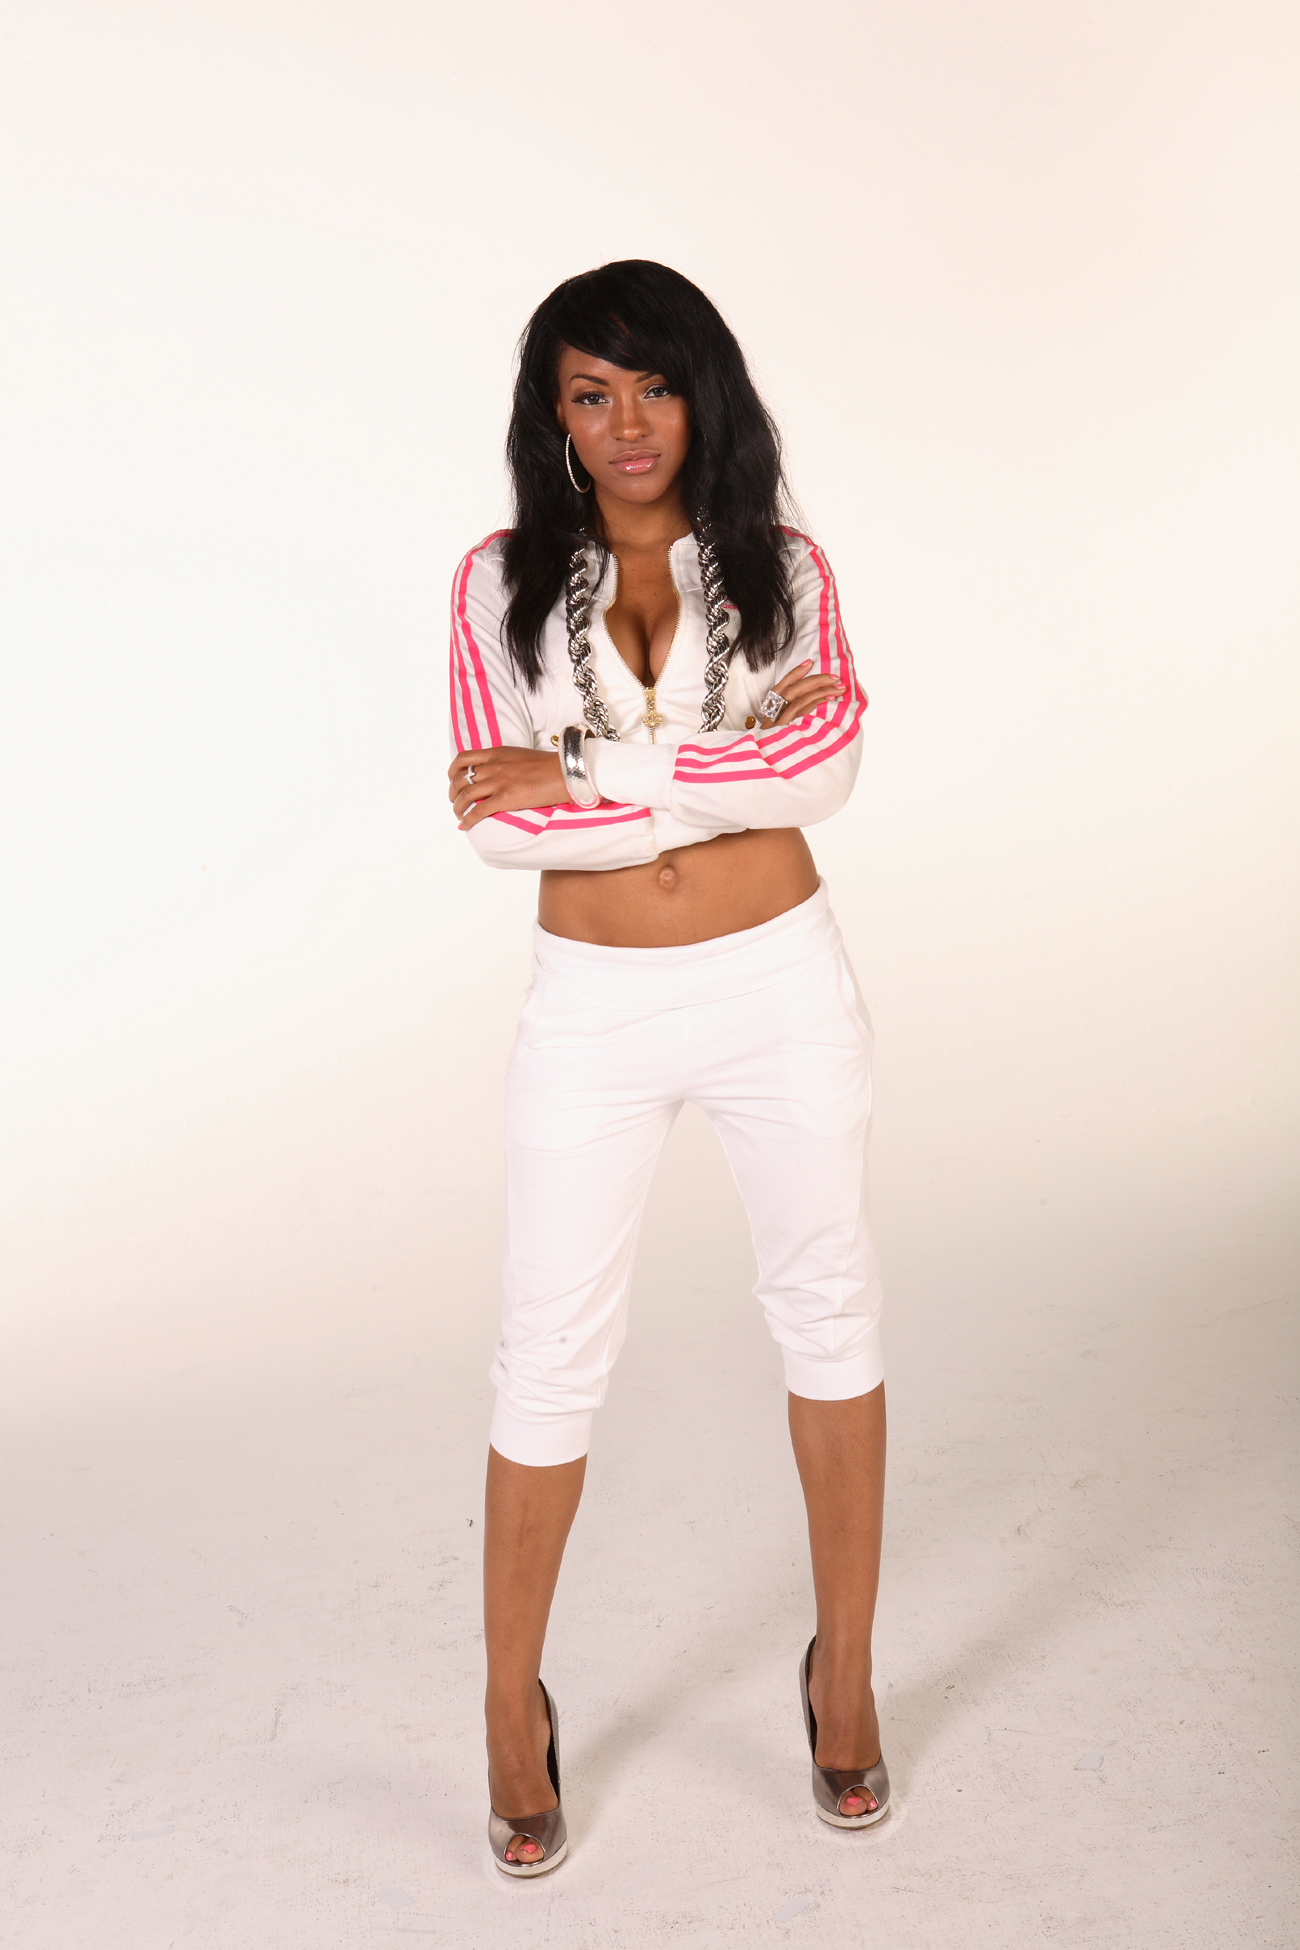 drew sidora the gamedrew sidora - til the dawn, drew sidora wikipedia, drew sidora tumblr, drew sidora - til the dawn скачать, drew sidora til the dawn lyrics, drew sidora instagram, drew sidora for the love, drew sidora dancing, drew sidora, drew sidora til the dawn mp3, drew sidora jordan, drew sidora step up, drew sidora til the dawn download, drew sidora husband, drew sidora net worth, drew sidora movies, drew sidora the game, drew sidora feet, drew sidora and meagan good, drew sidora that so raven